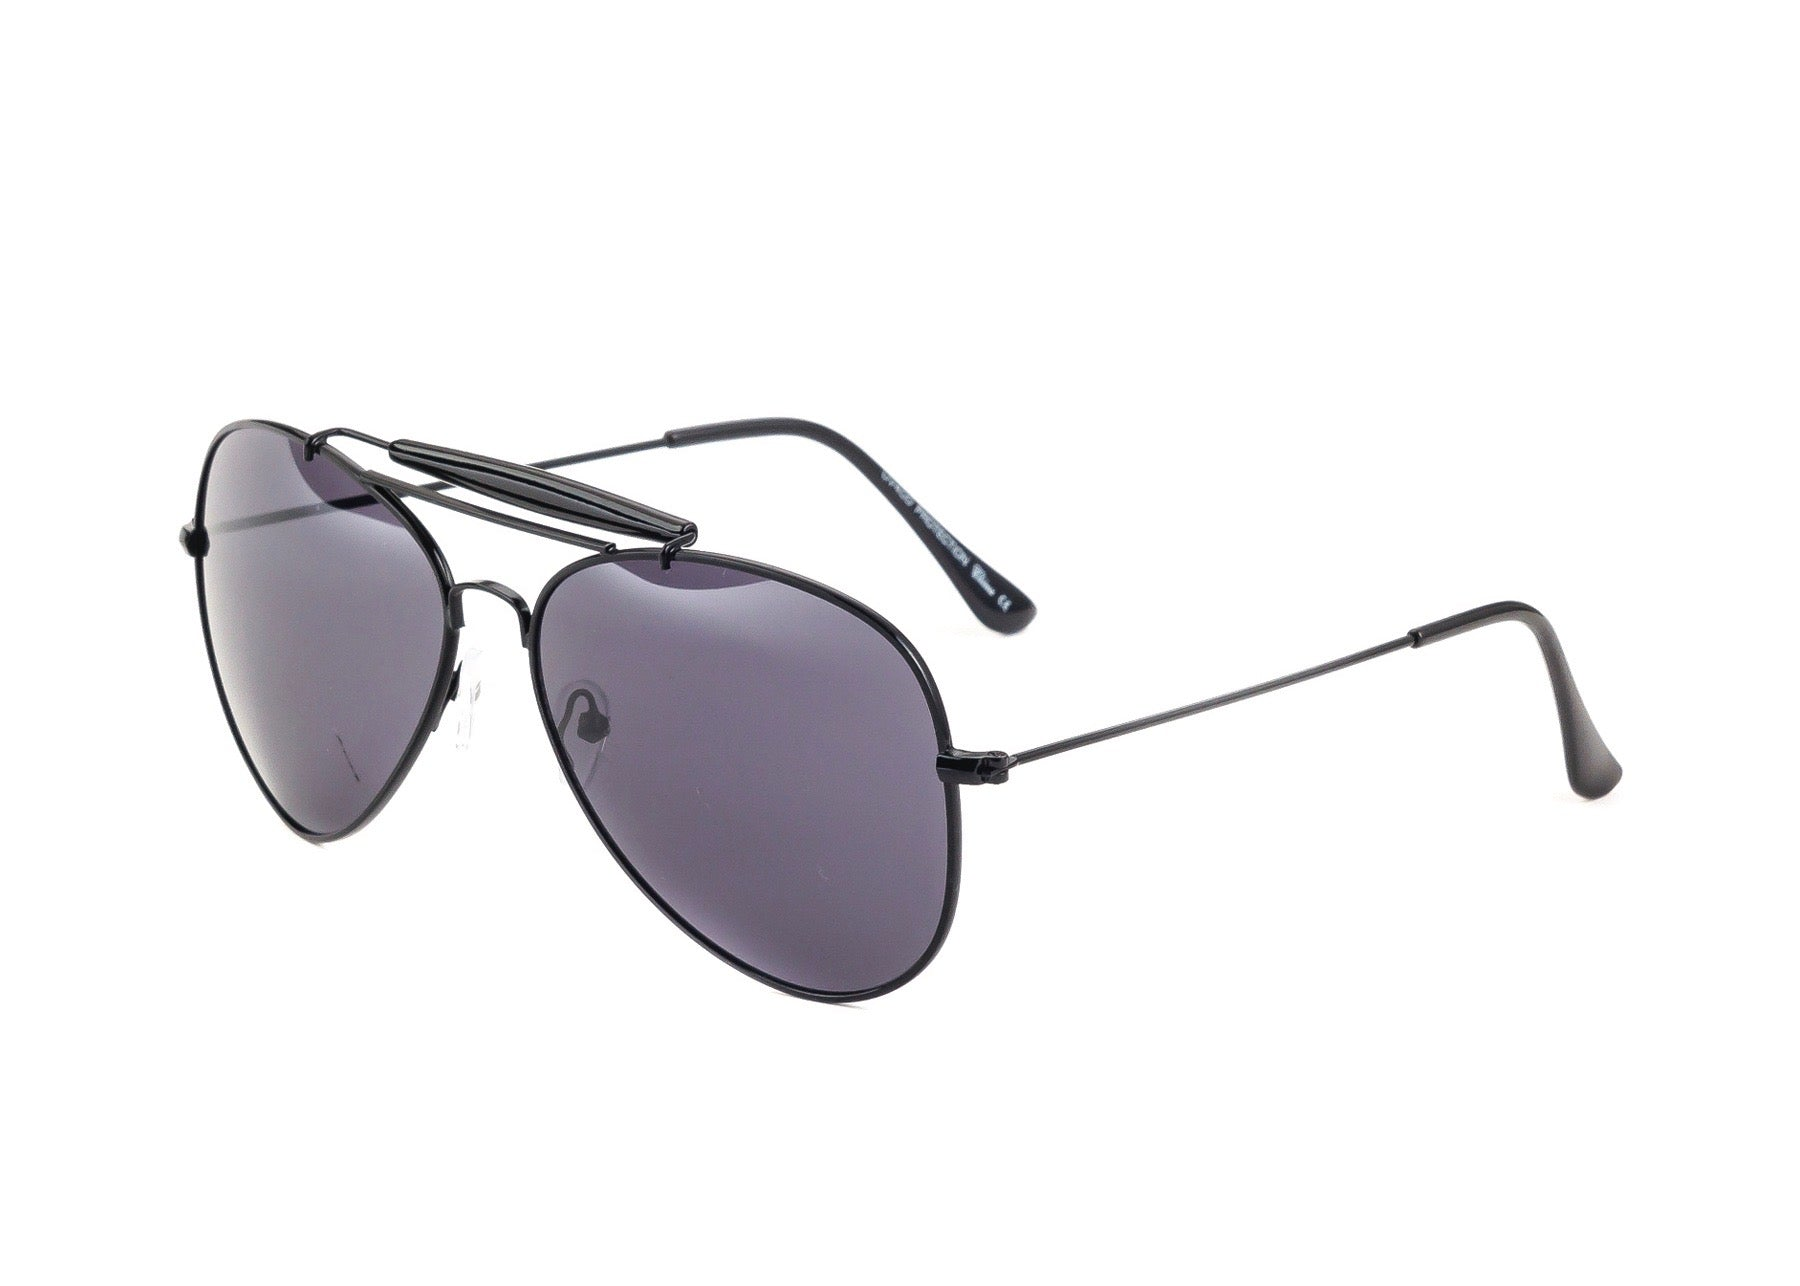 black metal frame aviator sunglasses with top bar